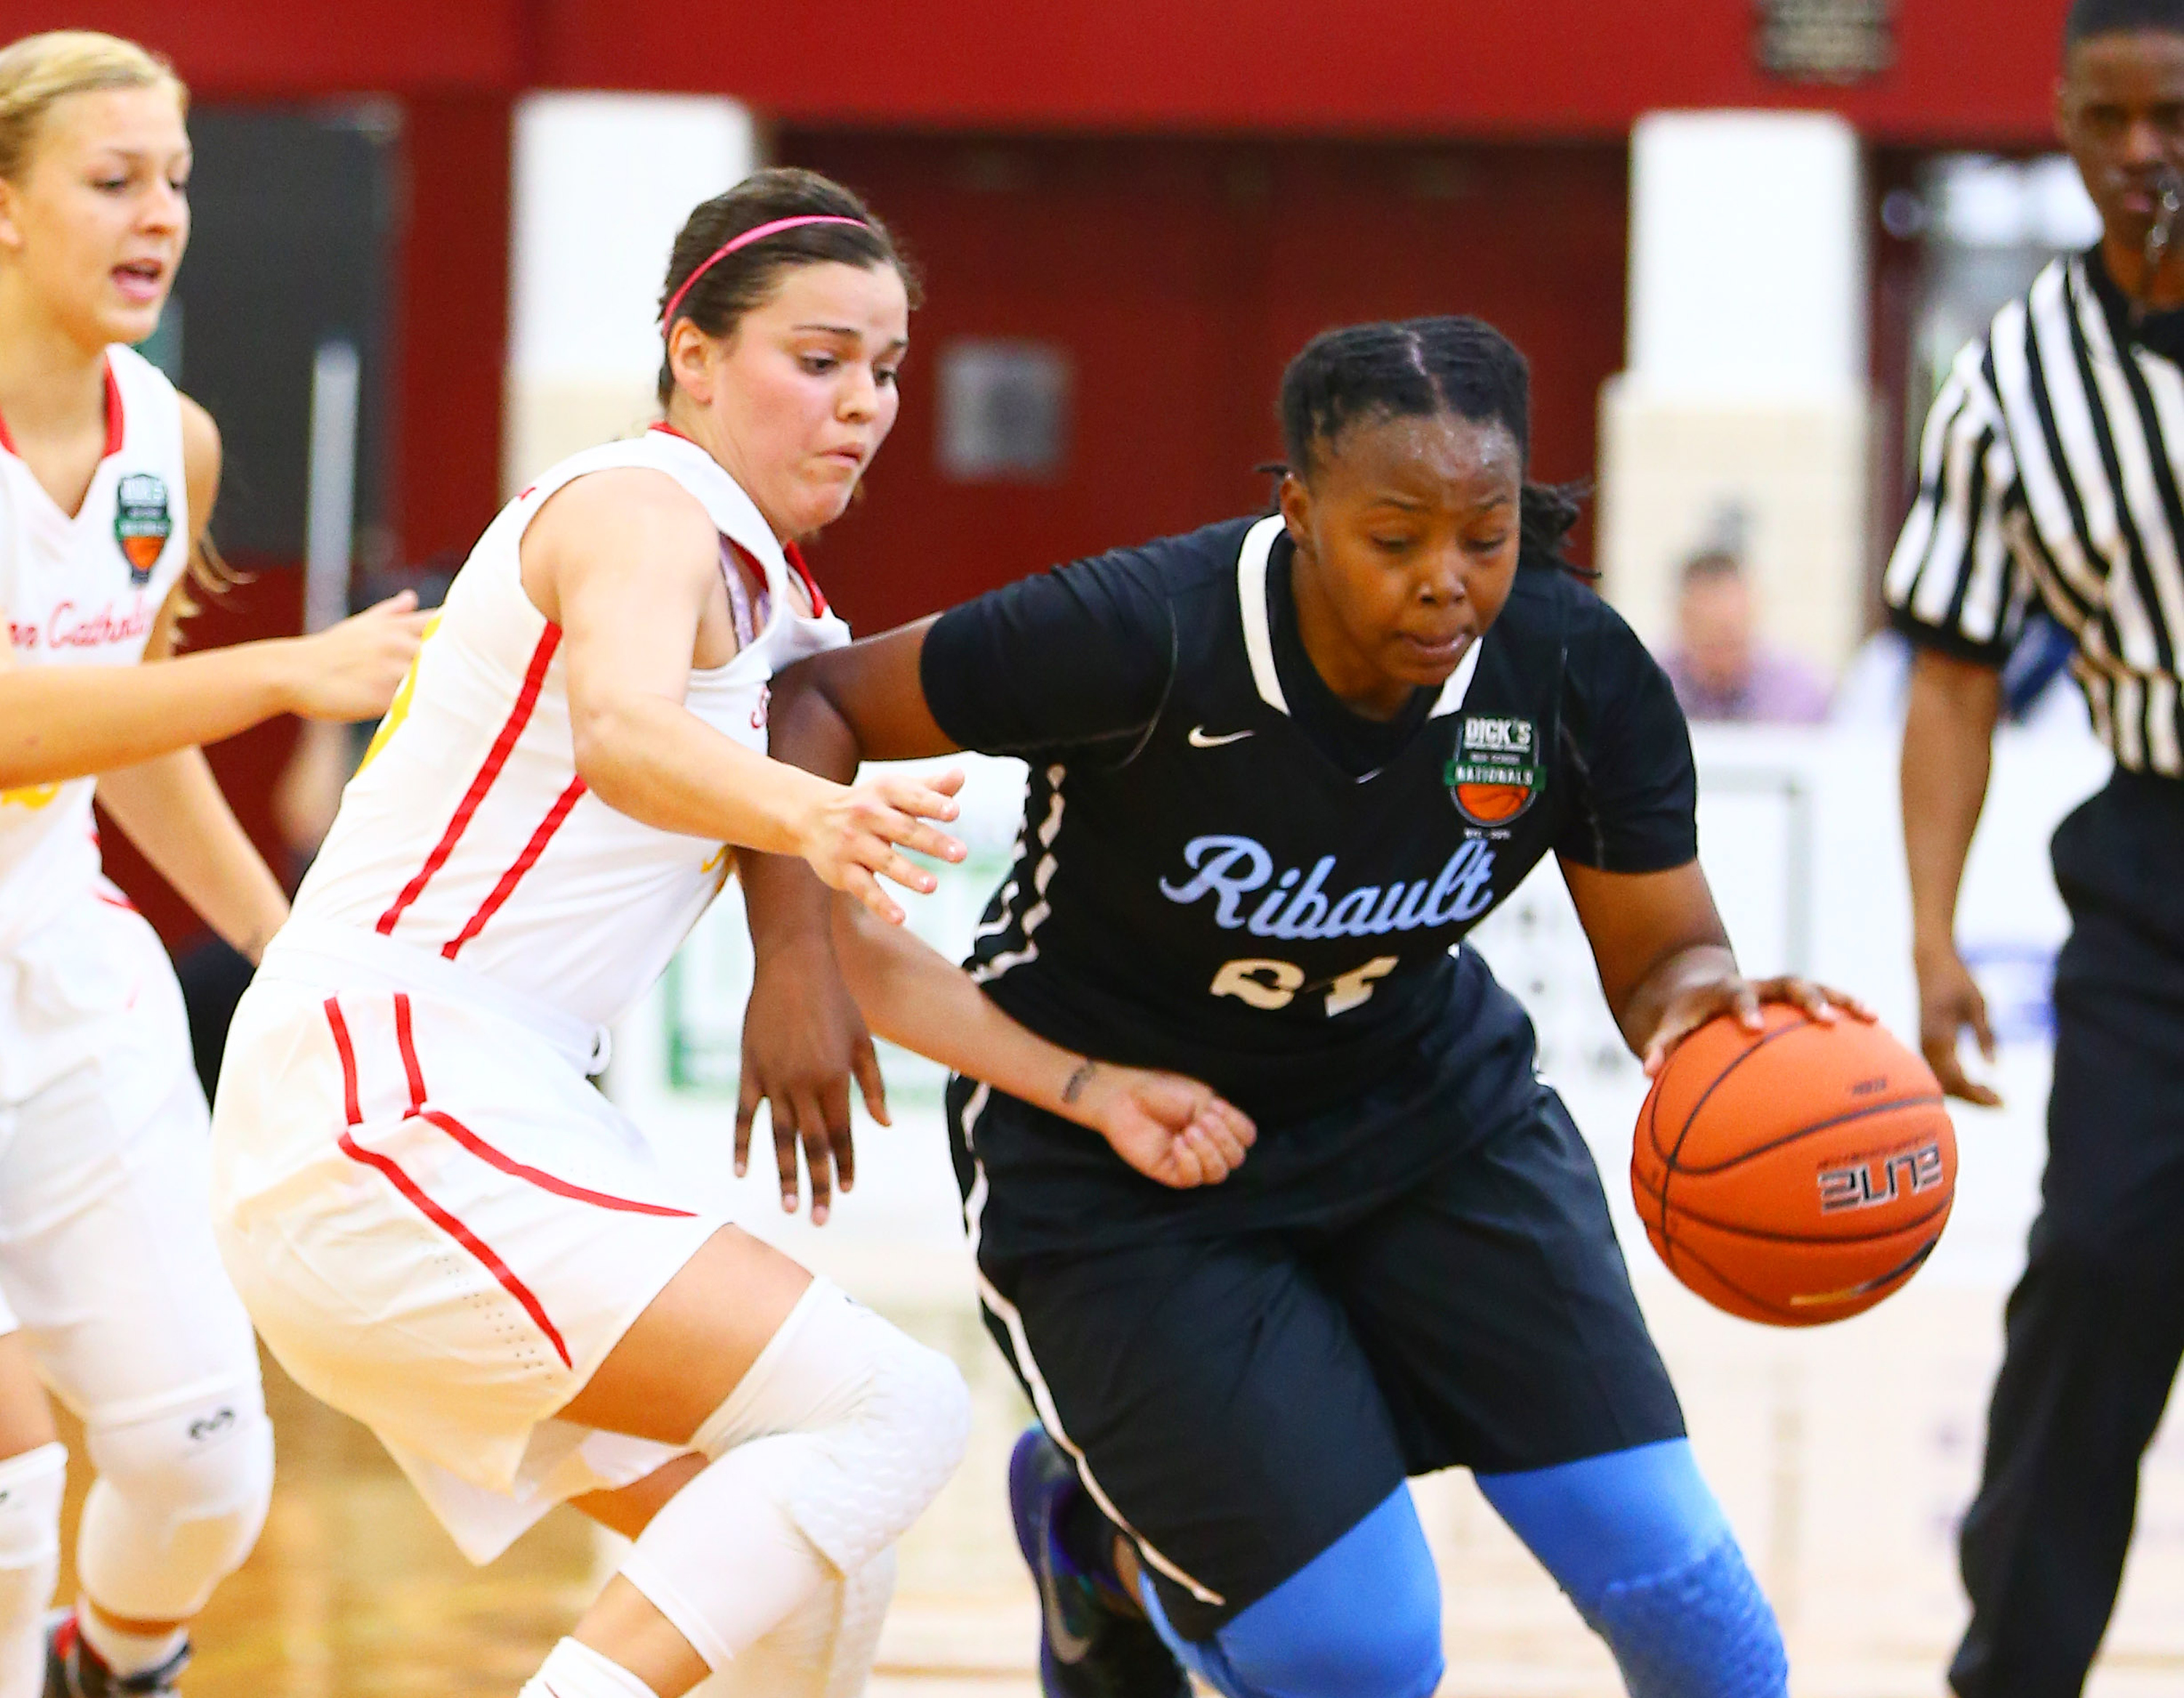 4/1/2016 1:00AM -- Middle Village, NY, U.S.A -- Seton Catholic guard Kendall Krick (33) defends against Ribault guard Day'neshia Banks (24) as she plays the ball during the first half during Dick's Sporting Goods High School Basketball Nationals at Christ the King Regional high school. -- Photo by Andy Marlin USA TODAY Sports Images, Gannett ORG XMIT: US 134676 Dick's basketbal 4/1/2016 [Via MerlinFTP Drop]